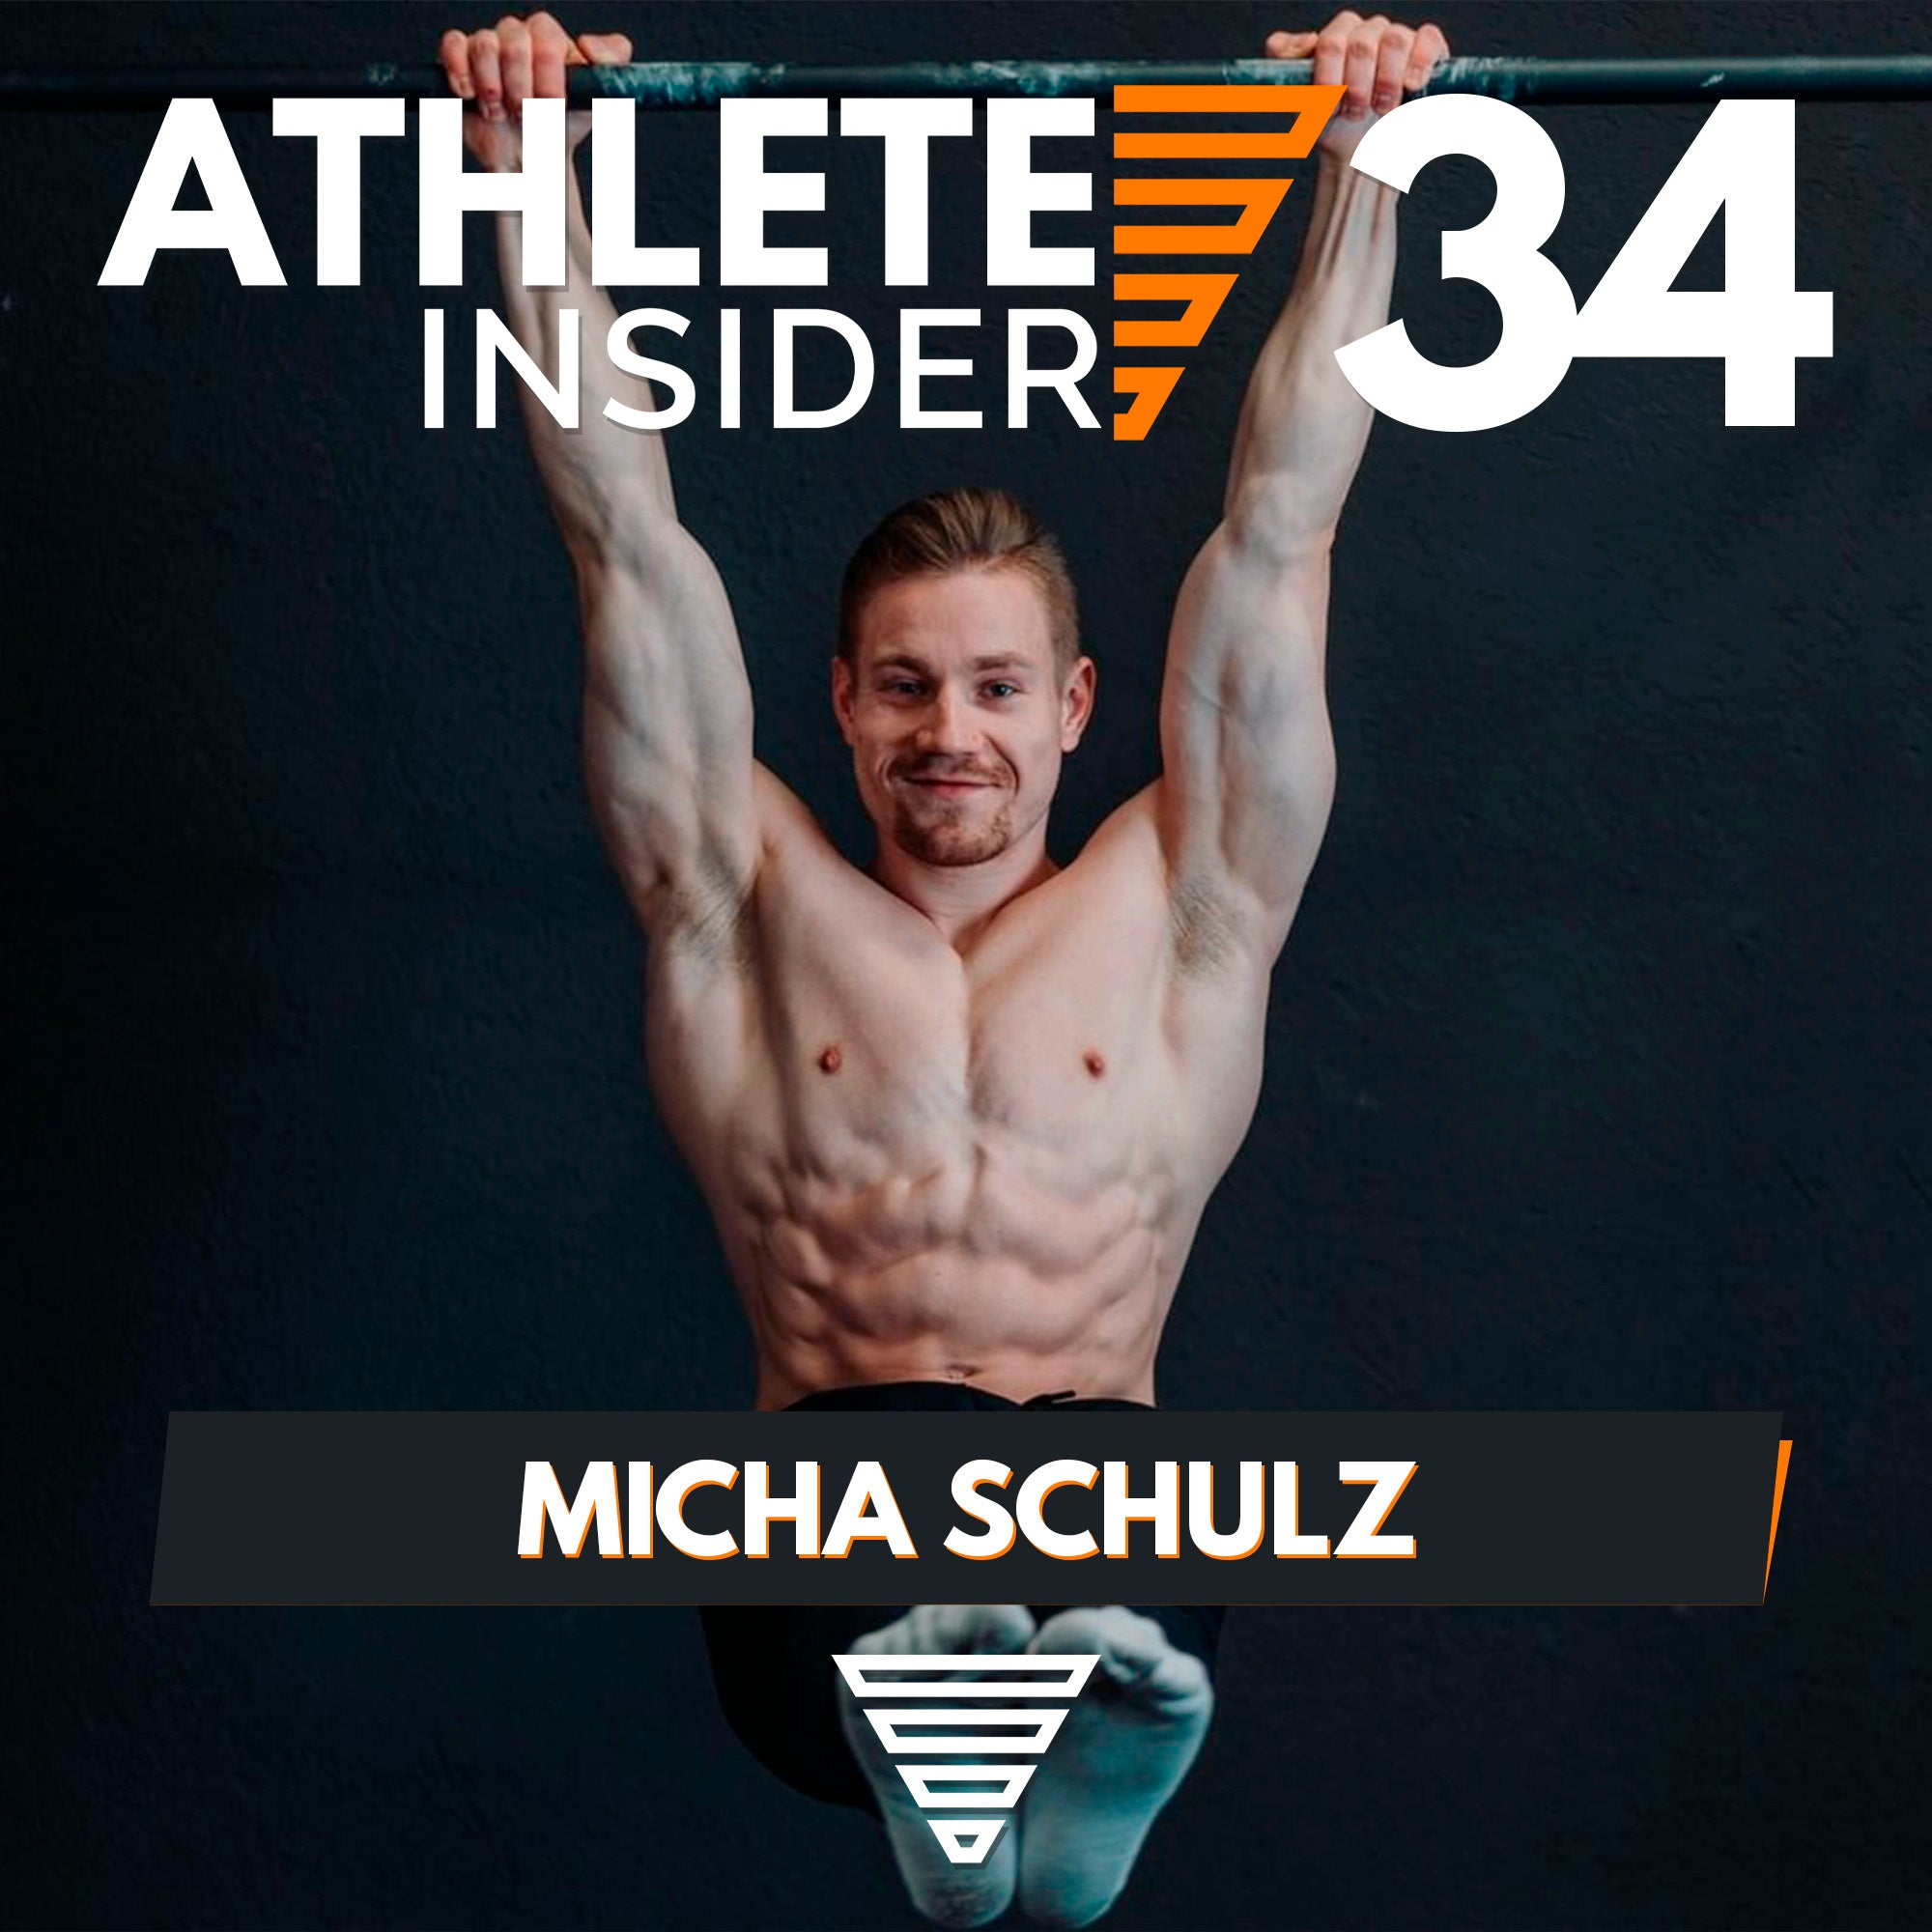 MICHA SCHULZ | Skills & Weighted Advice | Interview | The Athlete Insider Podcast #34